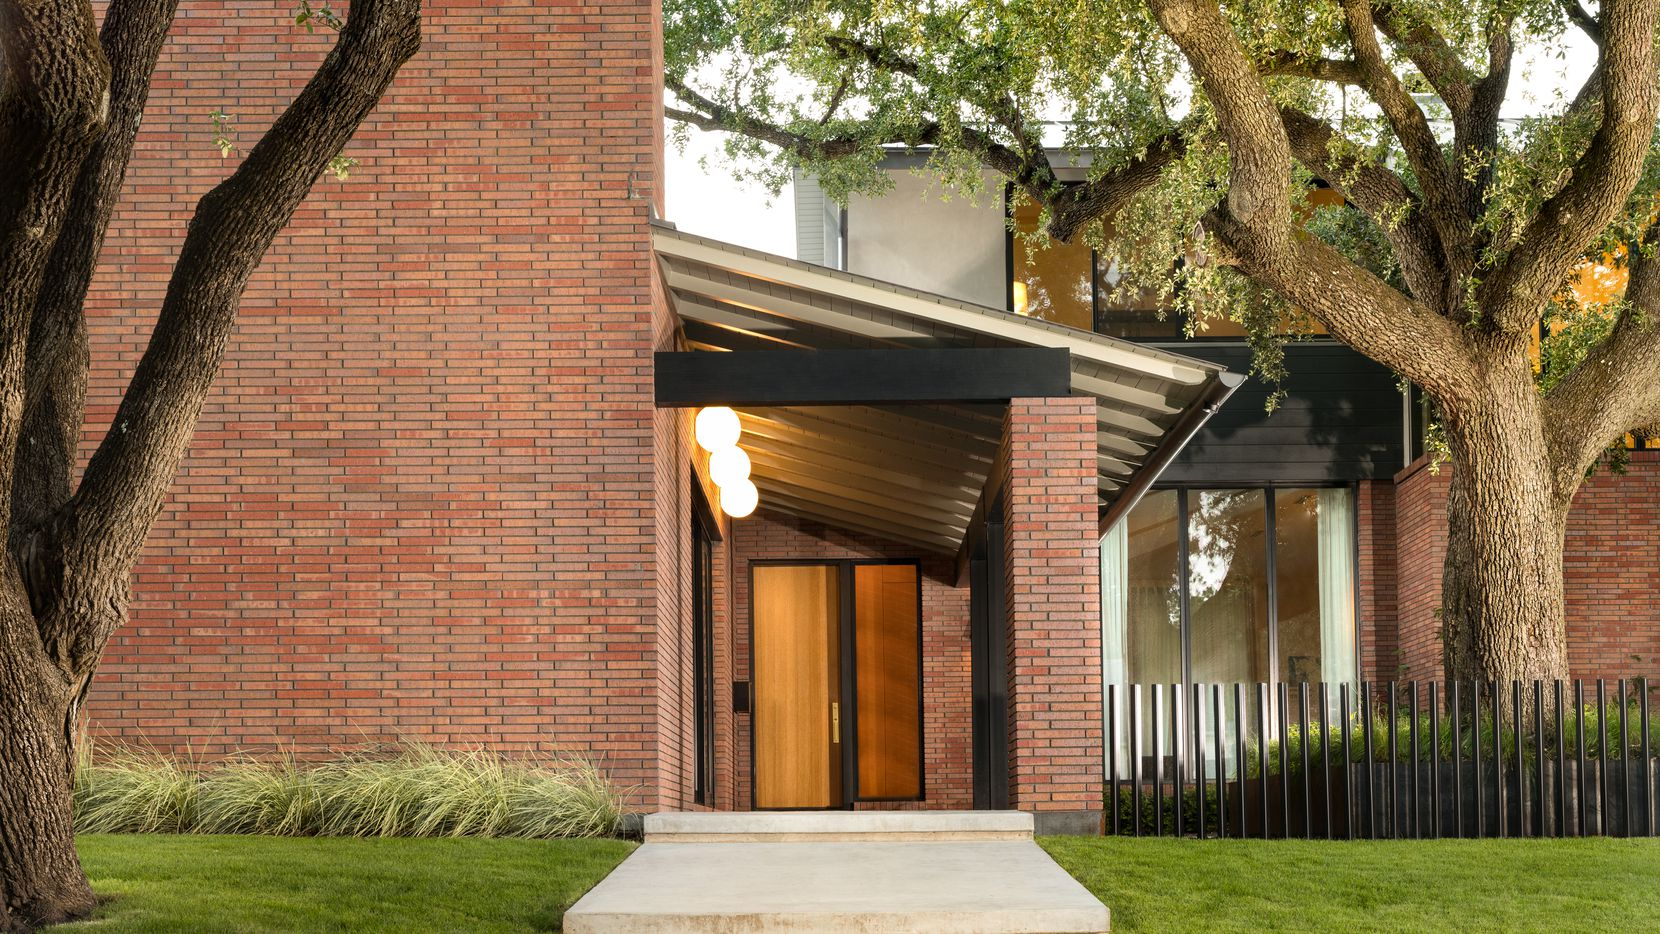 Tha Maestri project at 7147 Alexander is on the 2019 AIA Dallas Tour of Homes.